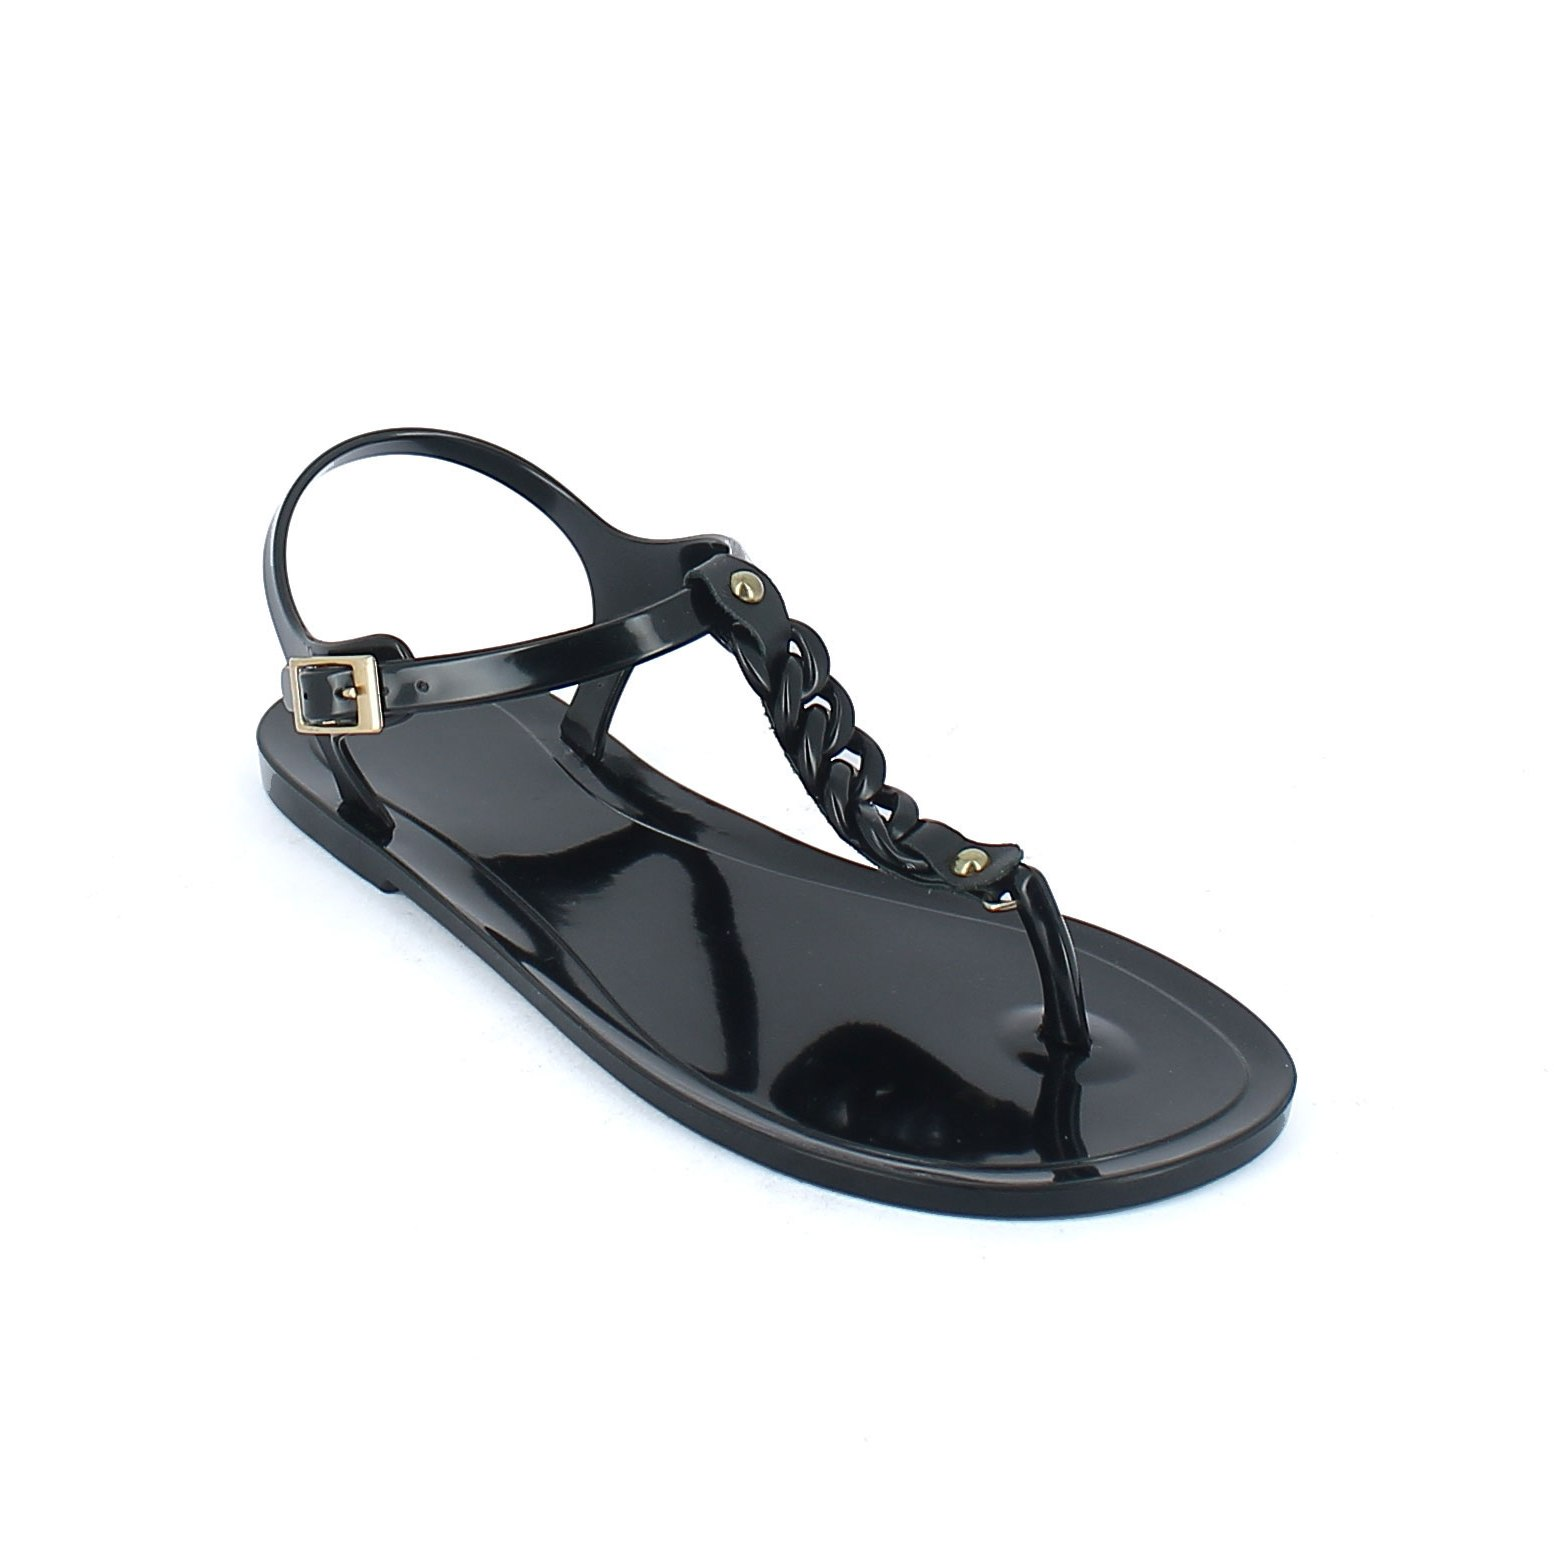 Solid colour bright finish pvc sandal with a small chain on the foot instep